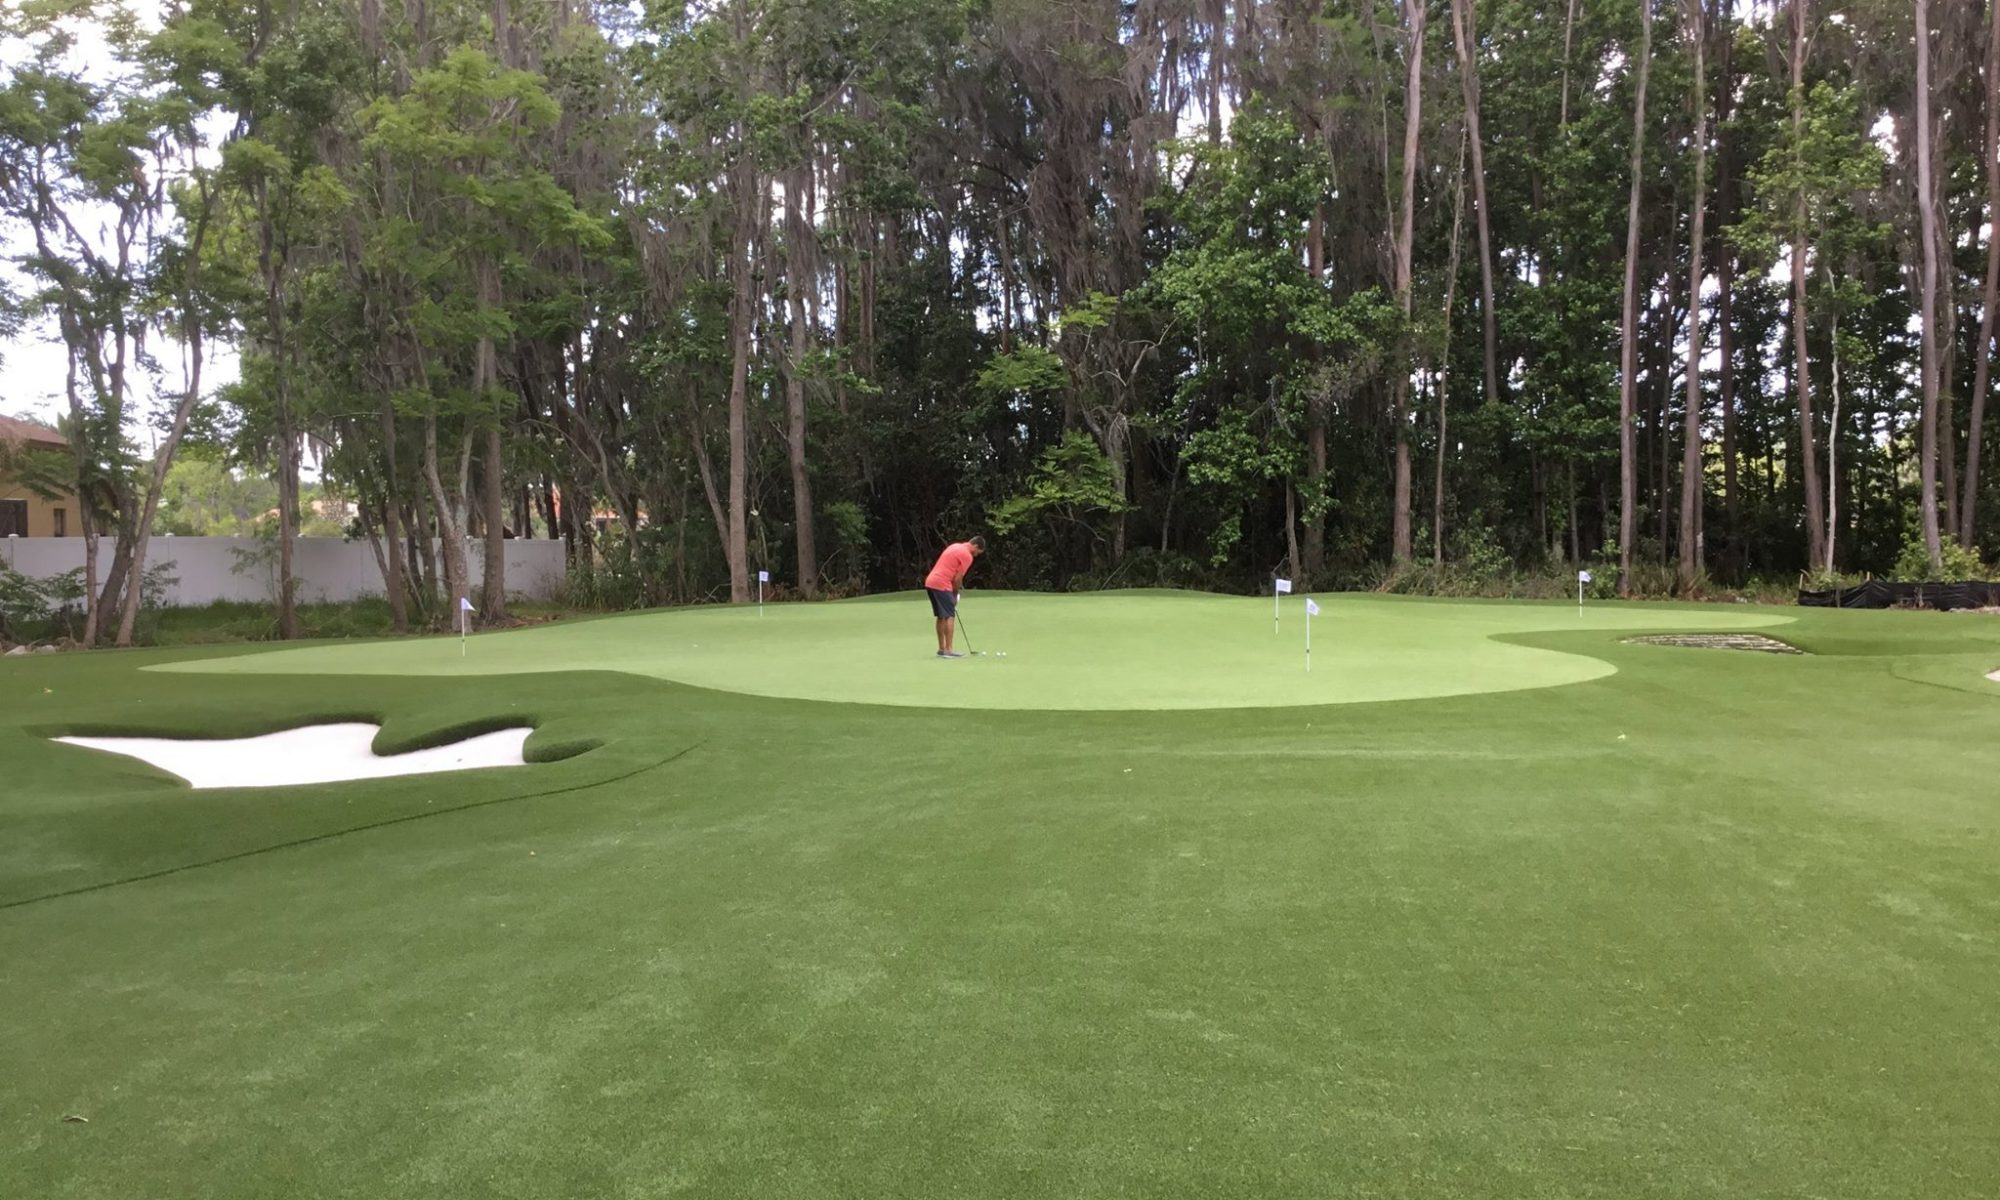 view of artificial grass golf green with putting